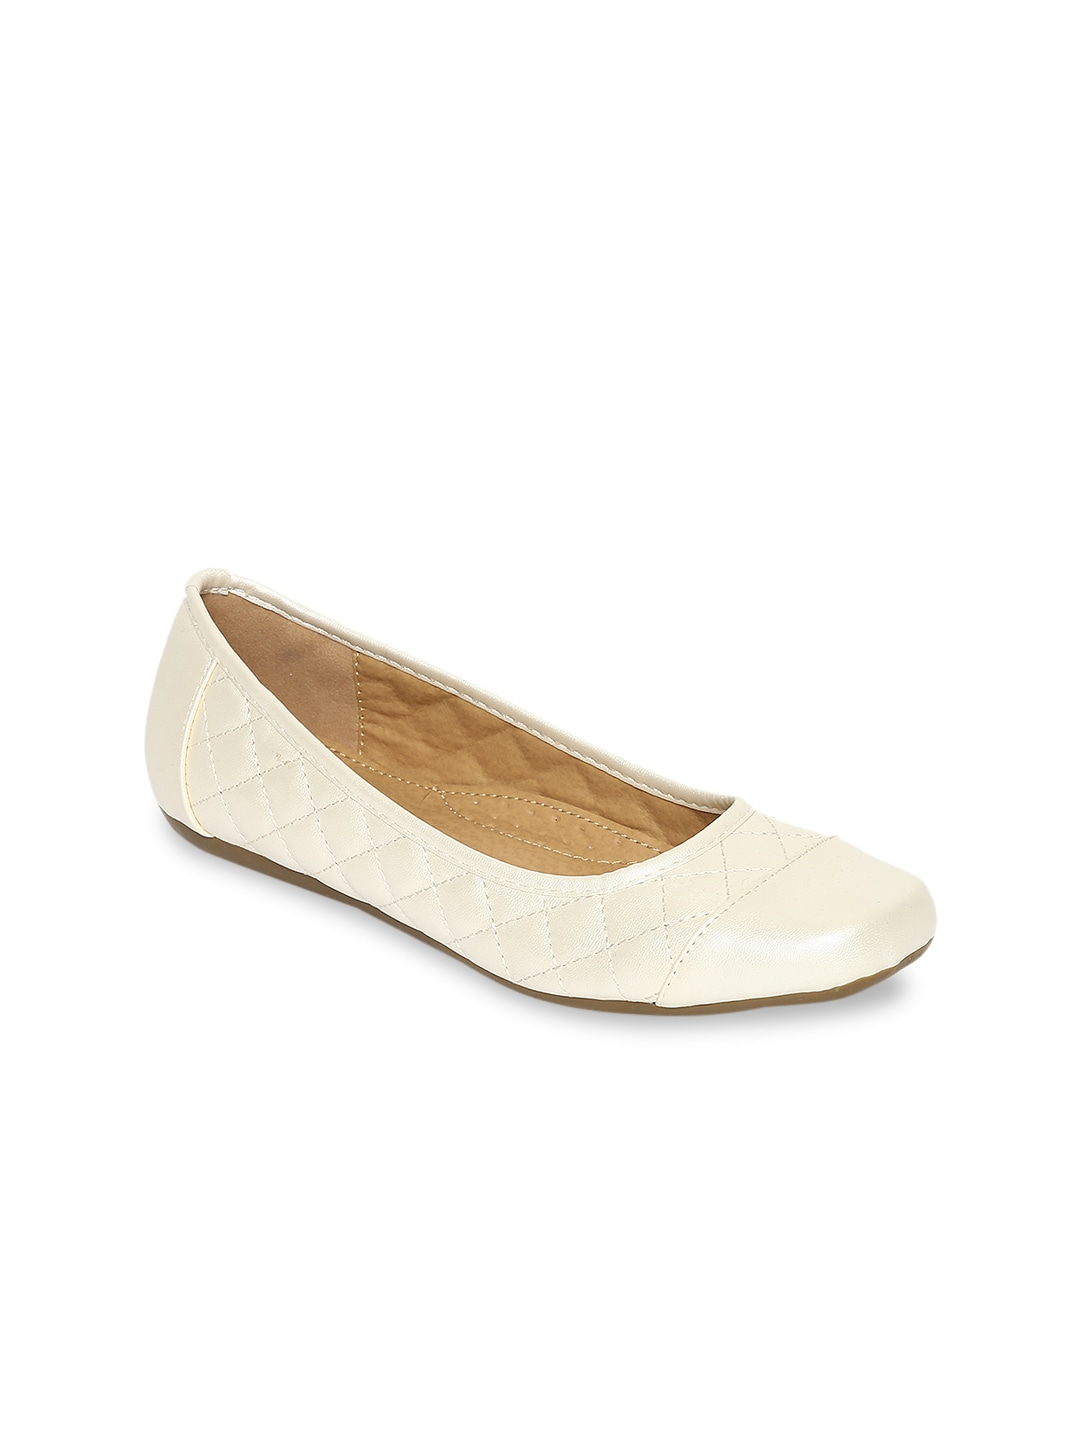 294daa39c92e Ballerina Shoes   Buy Ballerina Shoes Online in India at Best Price